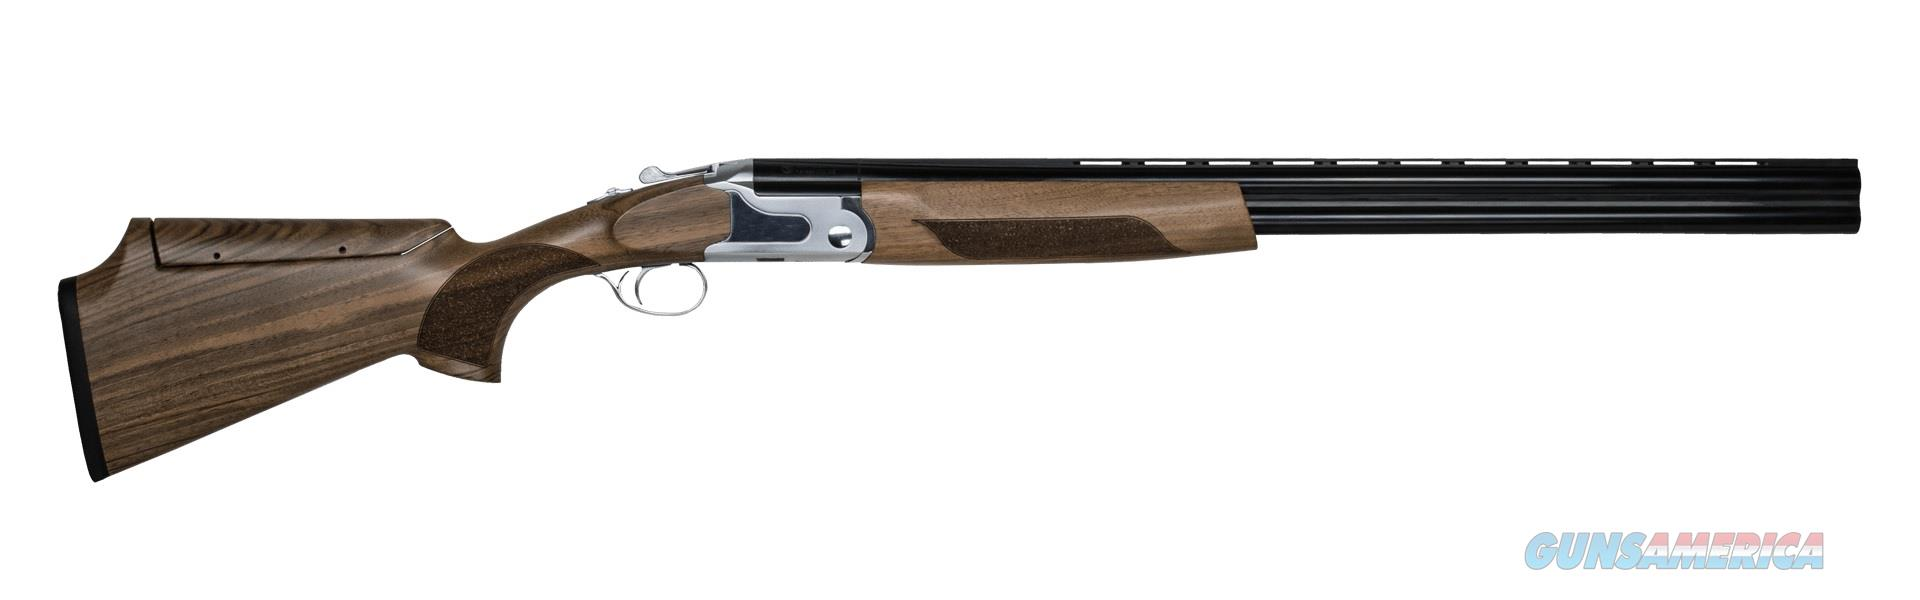 "CZ-USA CZ SCTP Southpaw Sterling 12 Gauge Walnut 28"" 06490   Guns > Shotguns > CZ Shotguns"